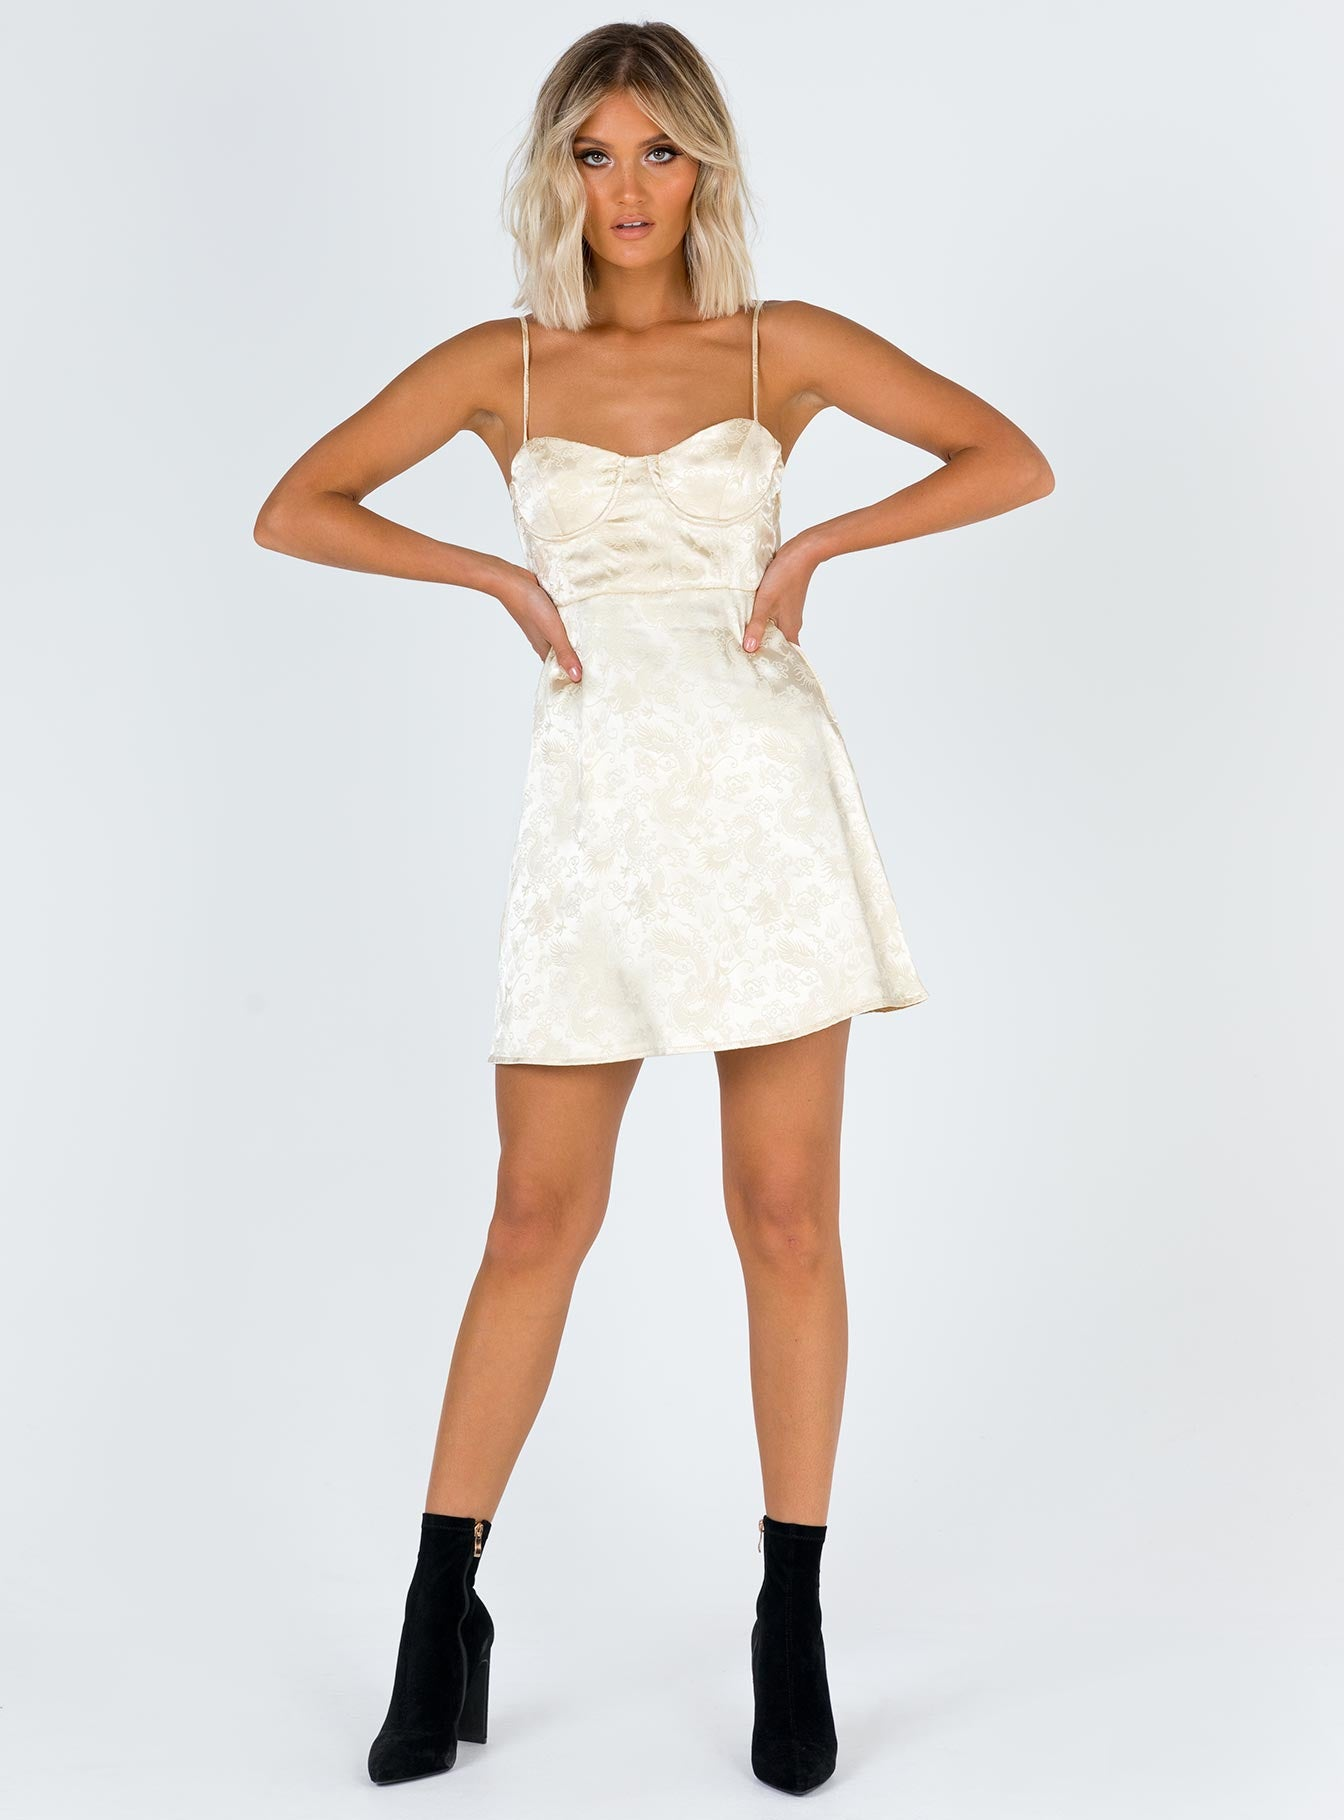 Champagne Pop Mini Dress